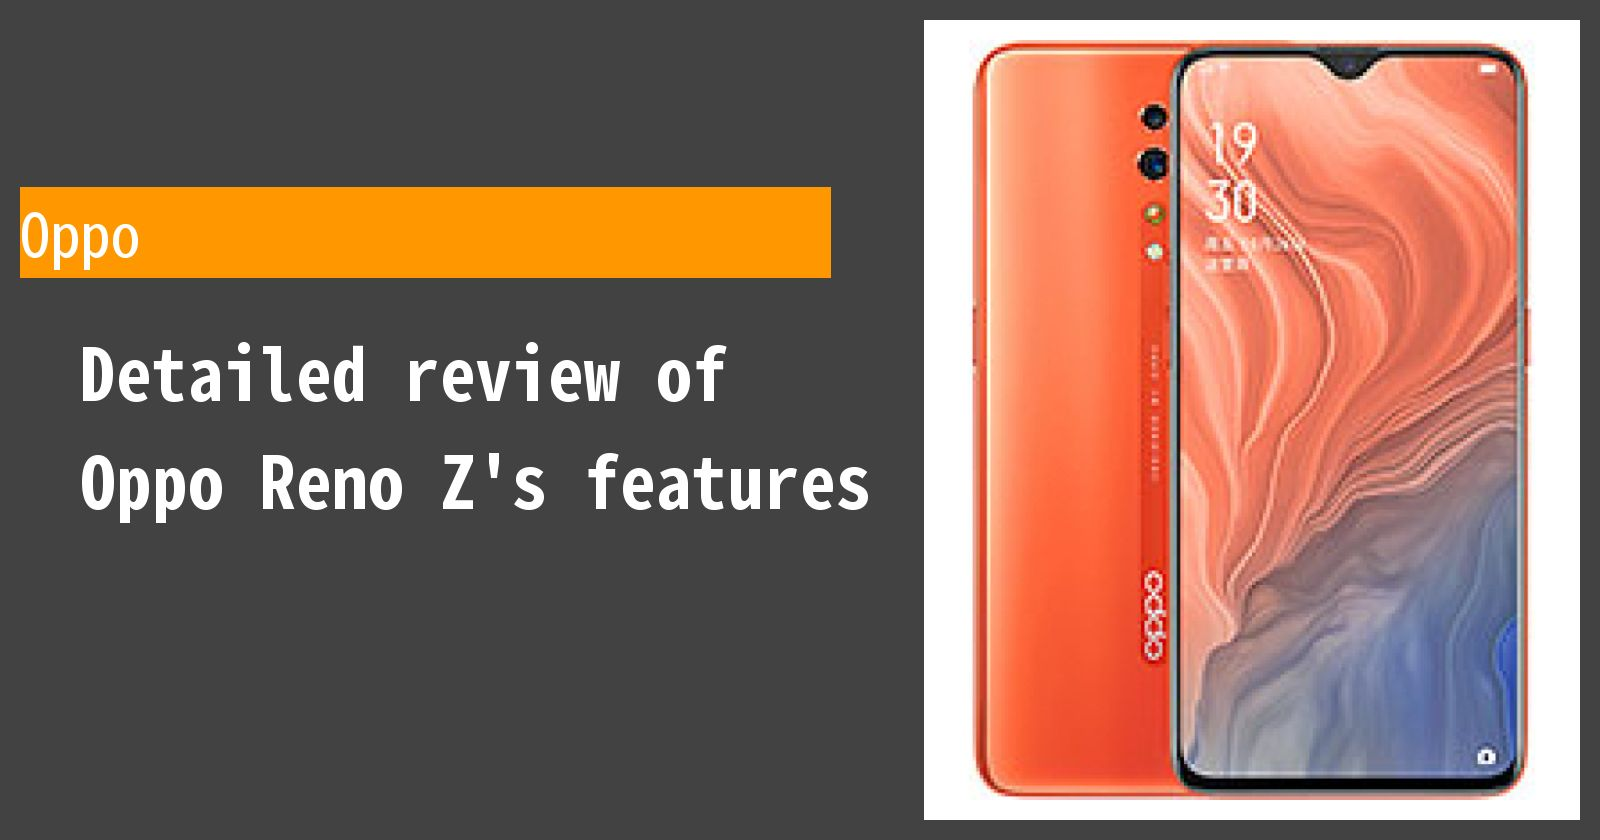 Detailed review of Oppo Reno Z's features